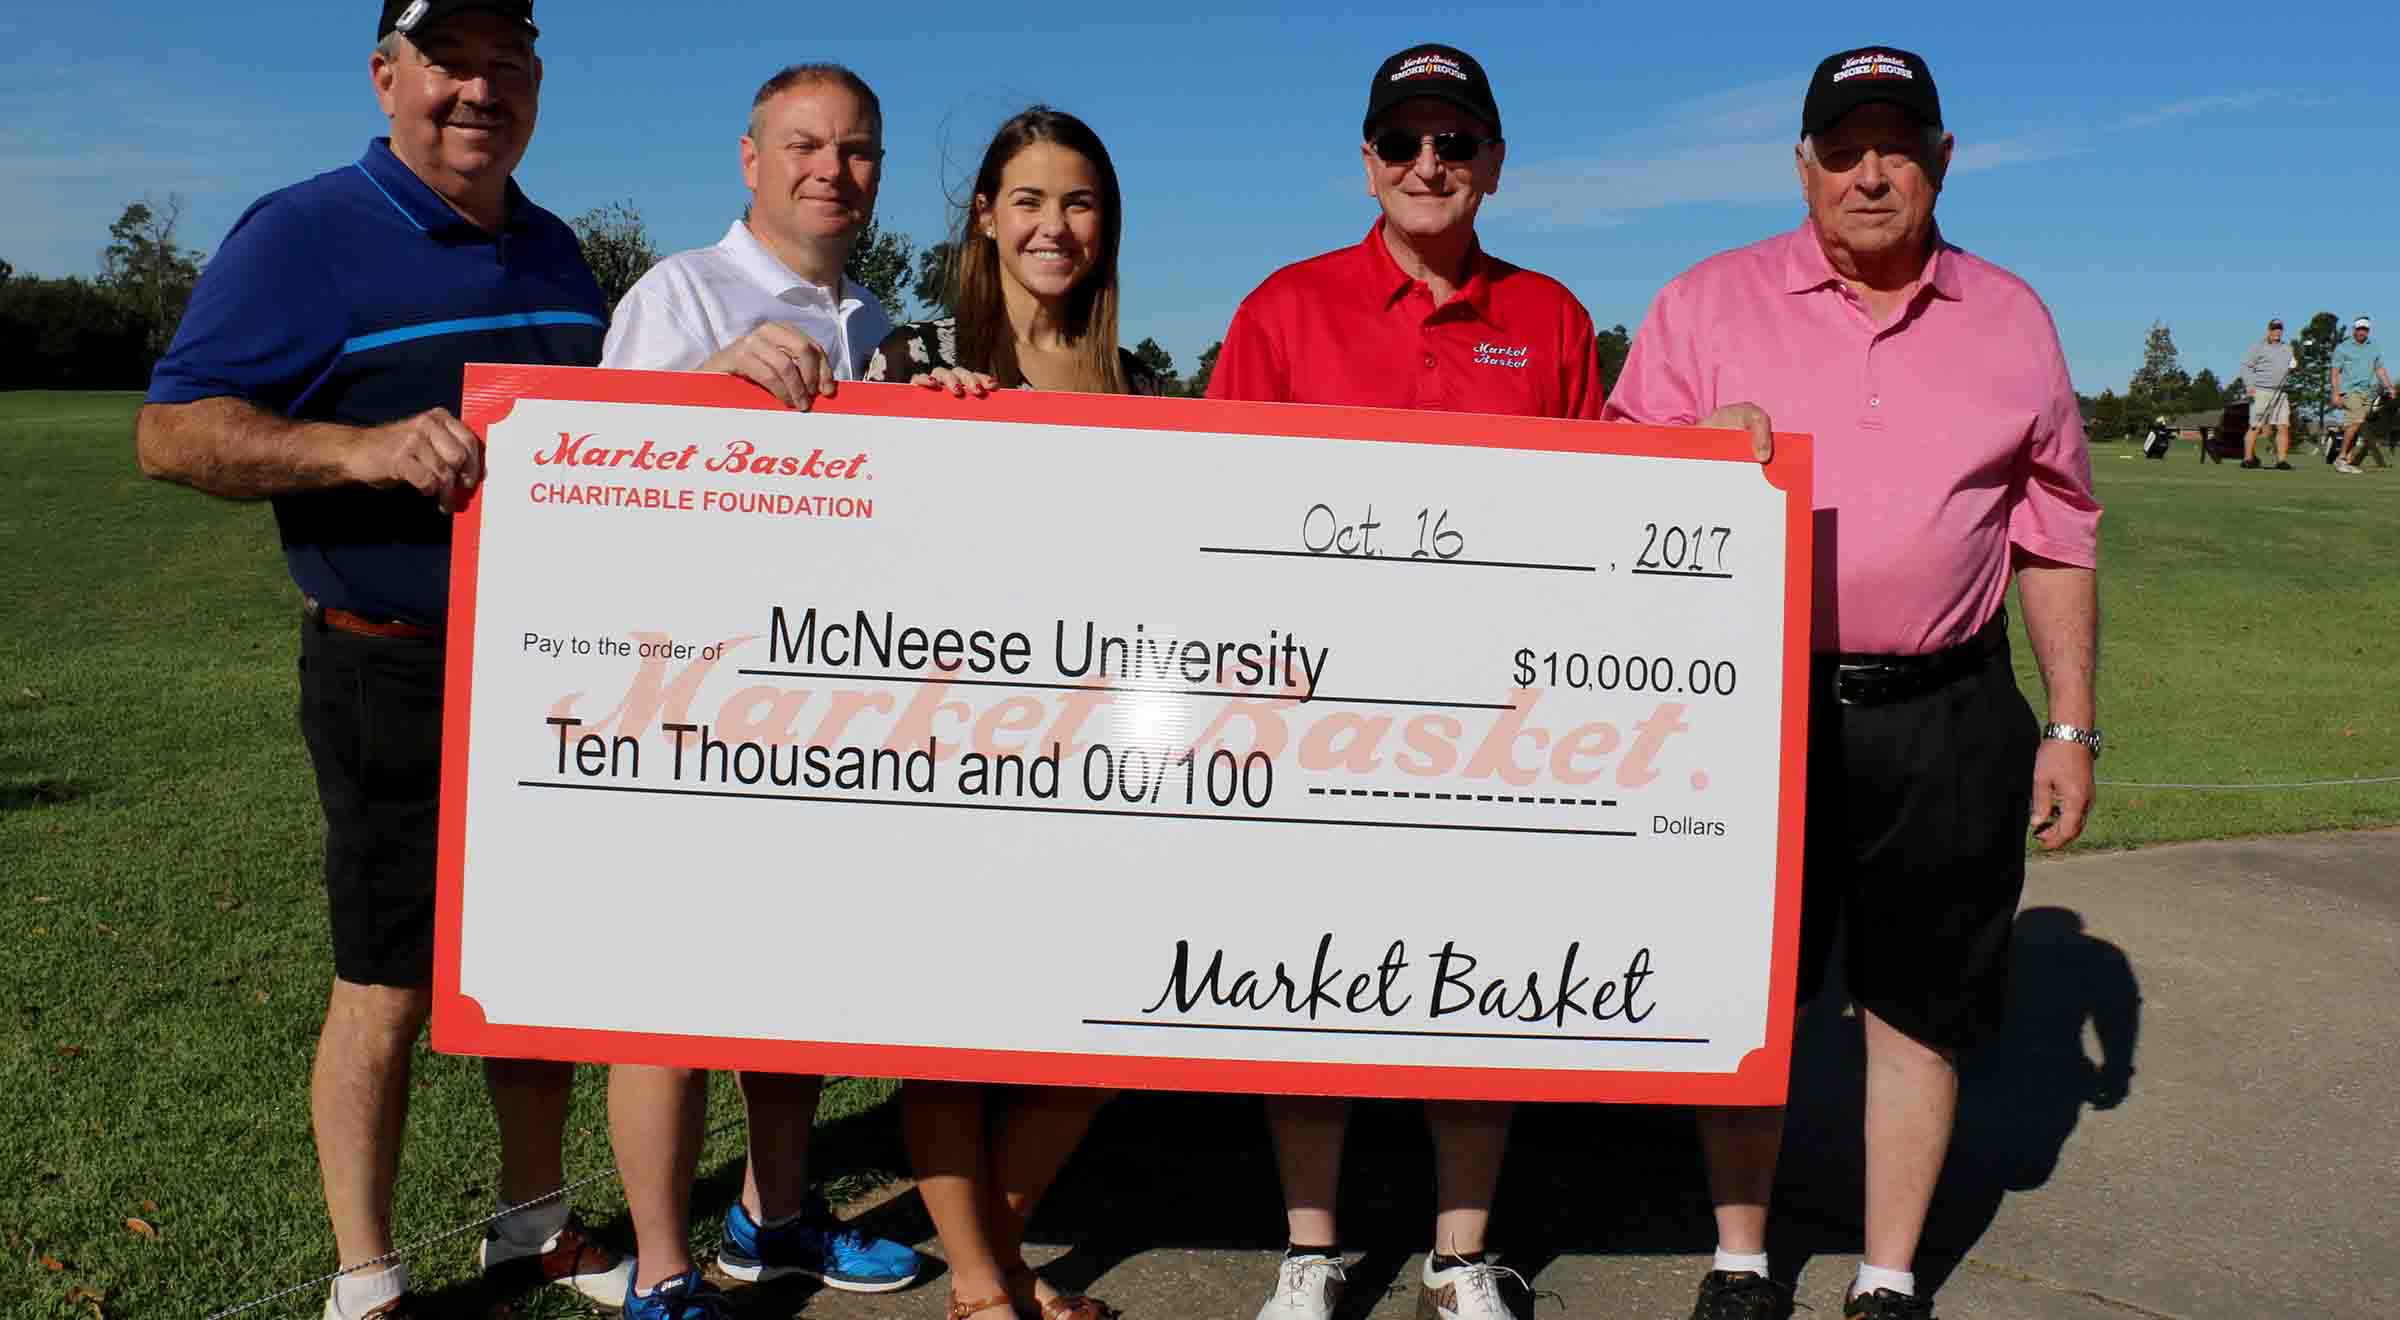 Steve Cormier, Russell Saleme, Skylar Thompson, and Keith Dauterive of Market Basket present a check to Kassidy Conrad the McNeese scholarship recipient.